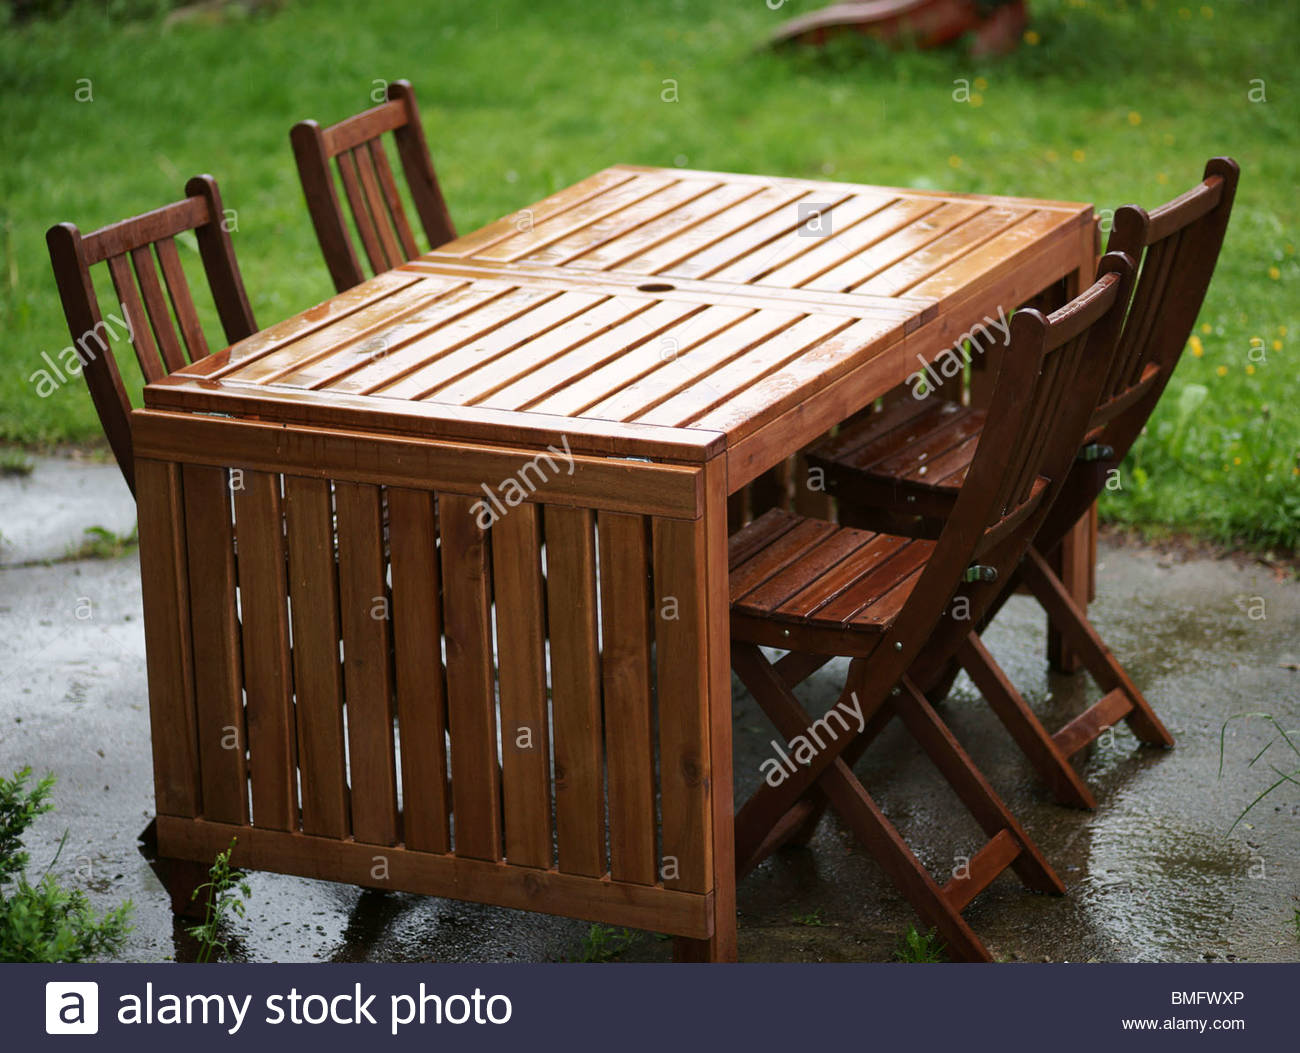 Garden furniture wooden table and chairs Stock Photo - Alamy